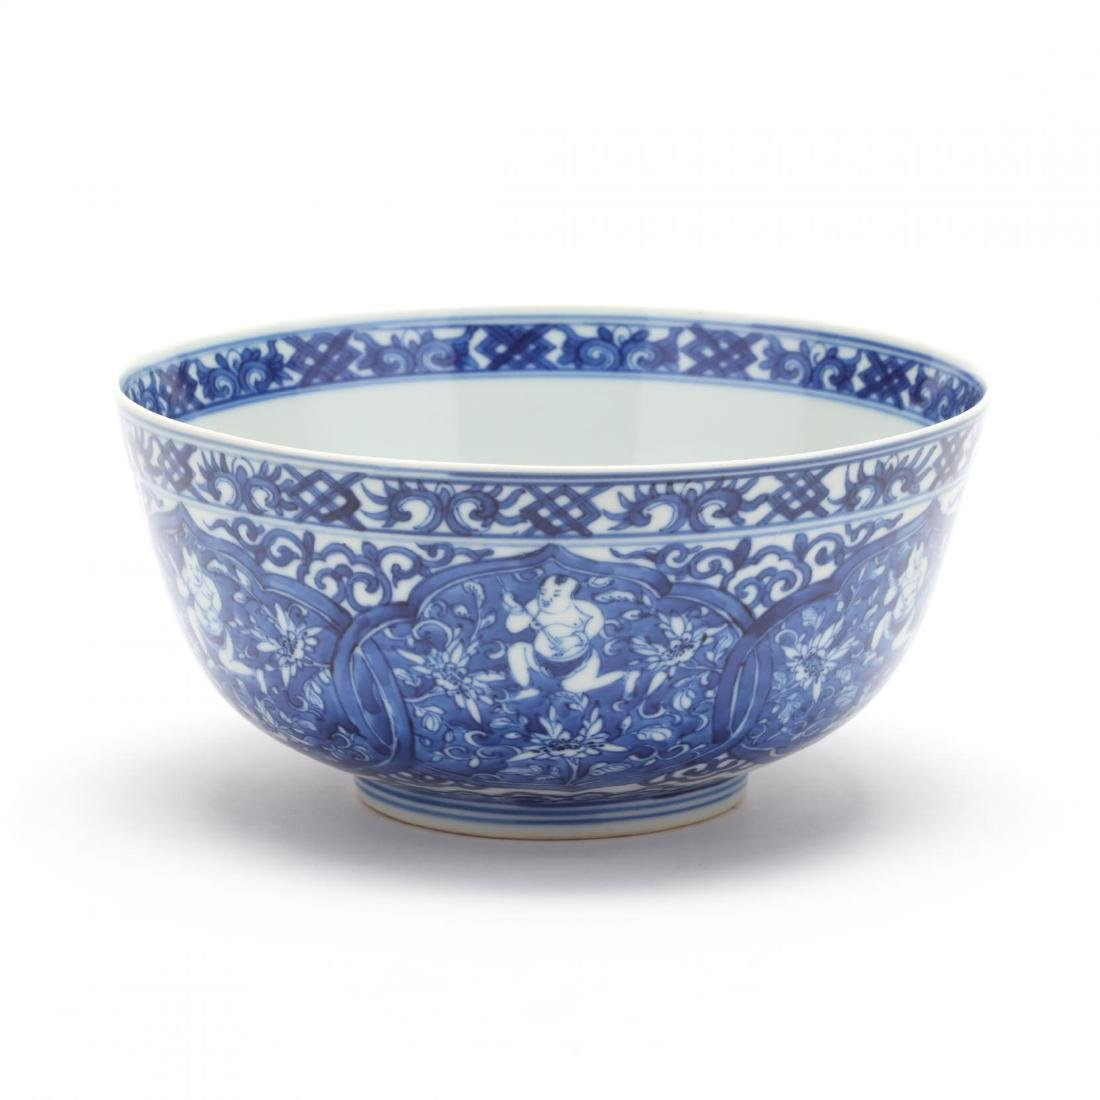 A Chinese Blue and White Porcelain Bowl with Boys